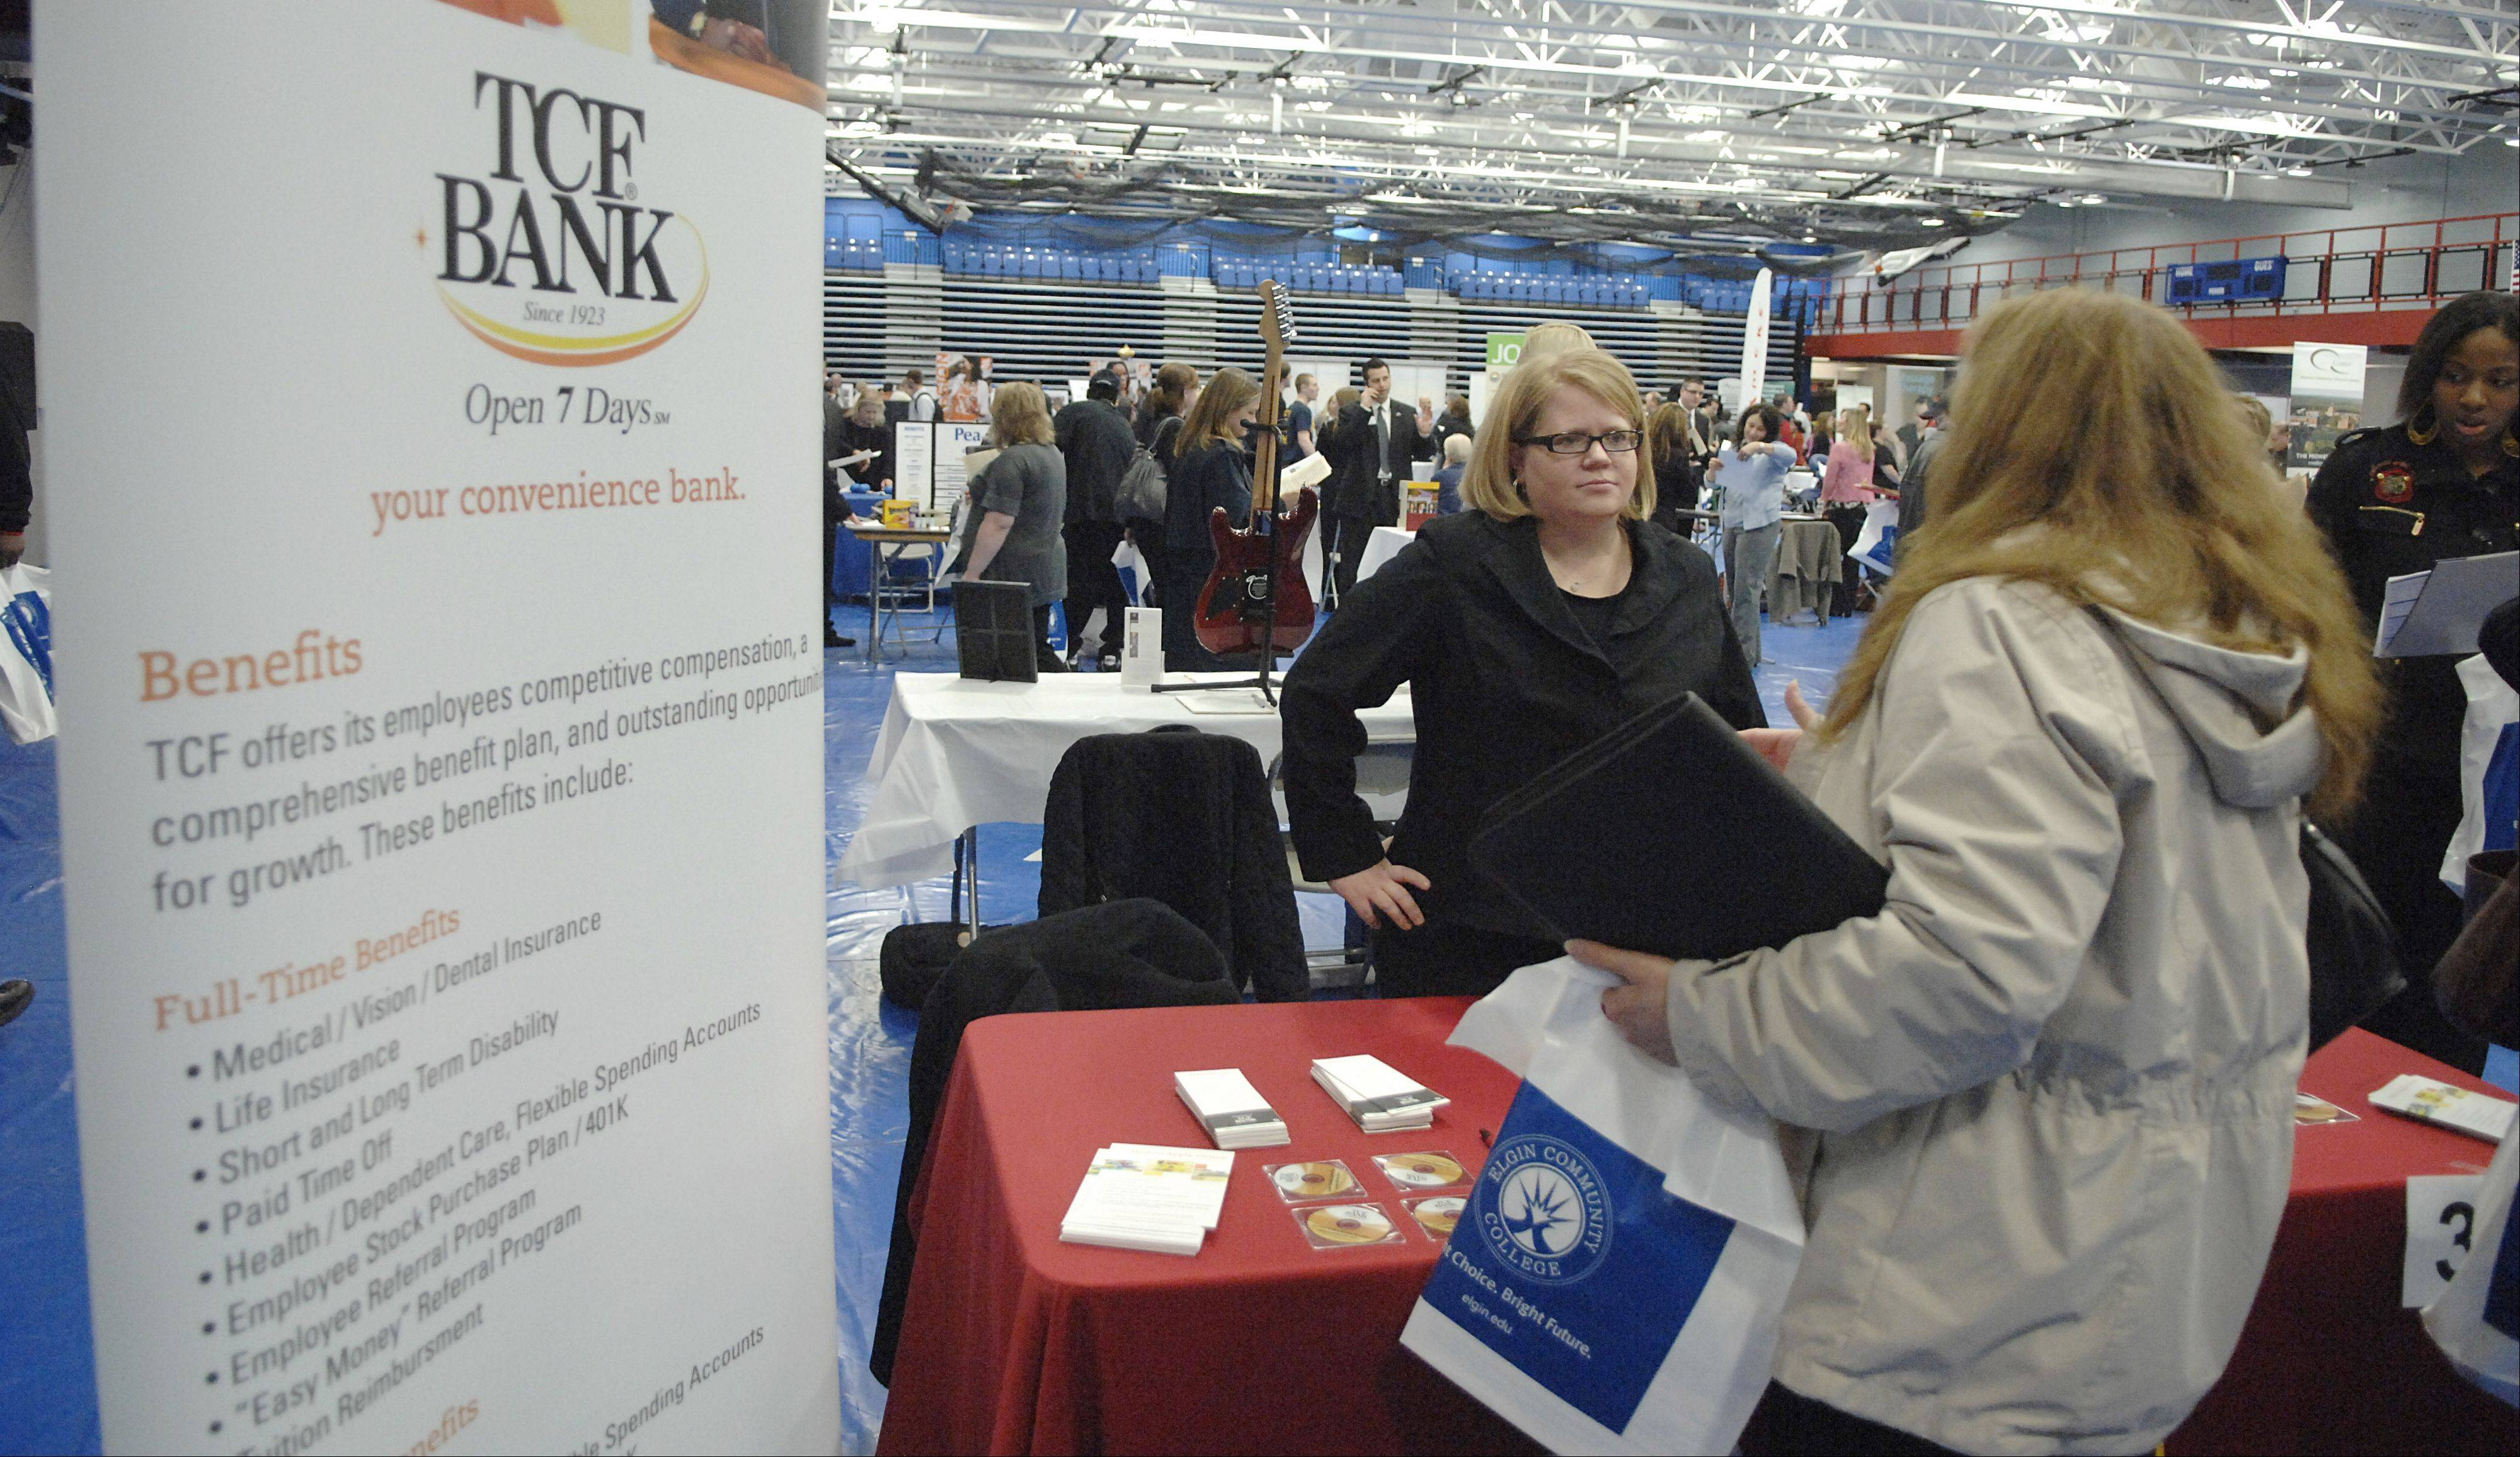 Employment specialist Debbie Sage of TCF Bank talks to interested applicants at a previous Elgin Community College job fair. Job fairs are scheduled for Friday, April 19, at ECC and McHenry County College.